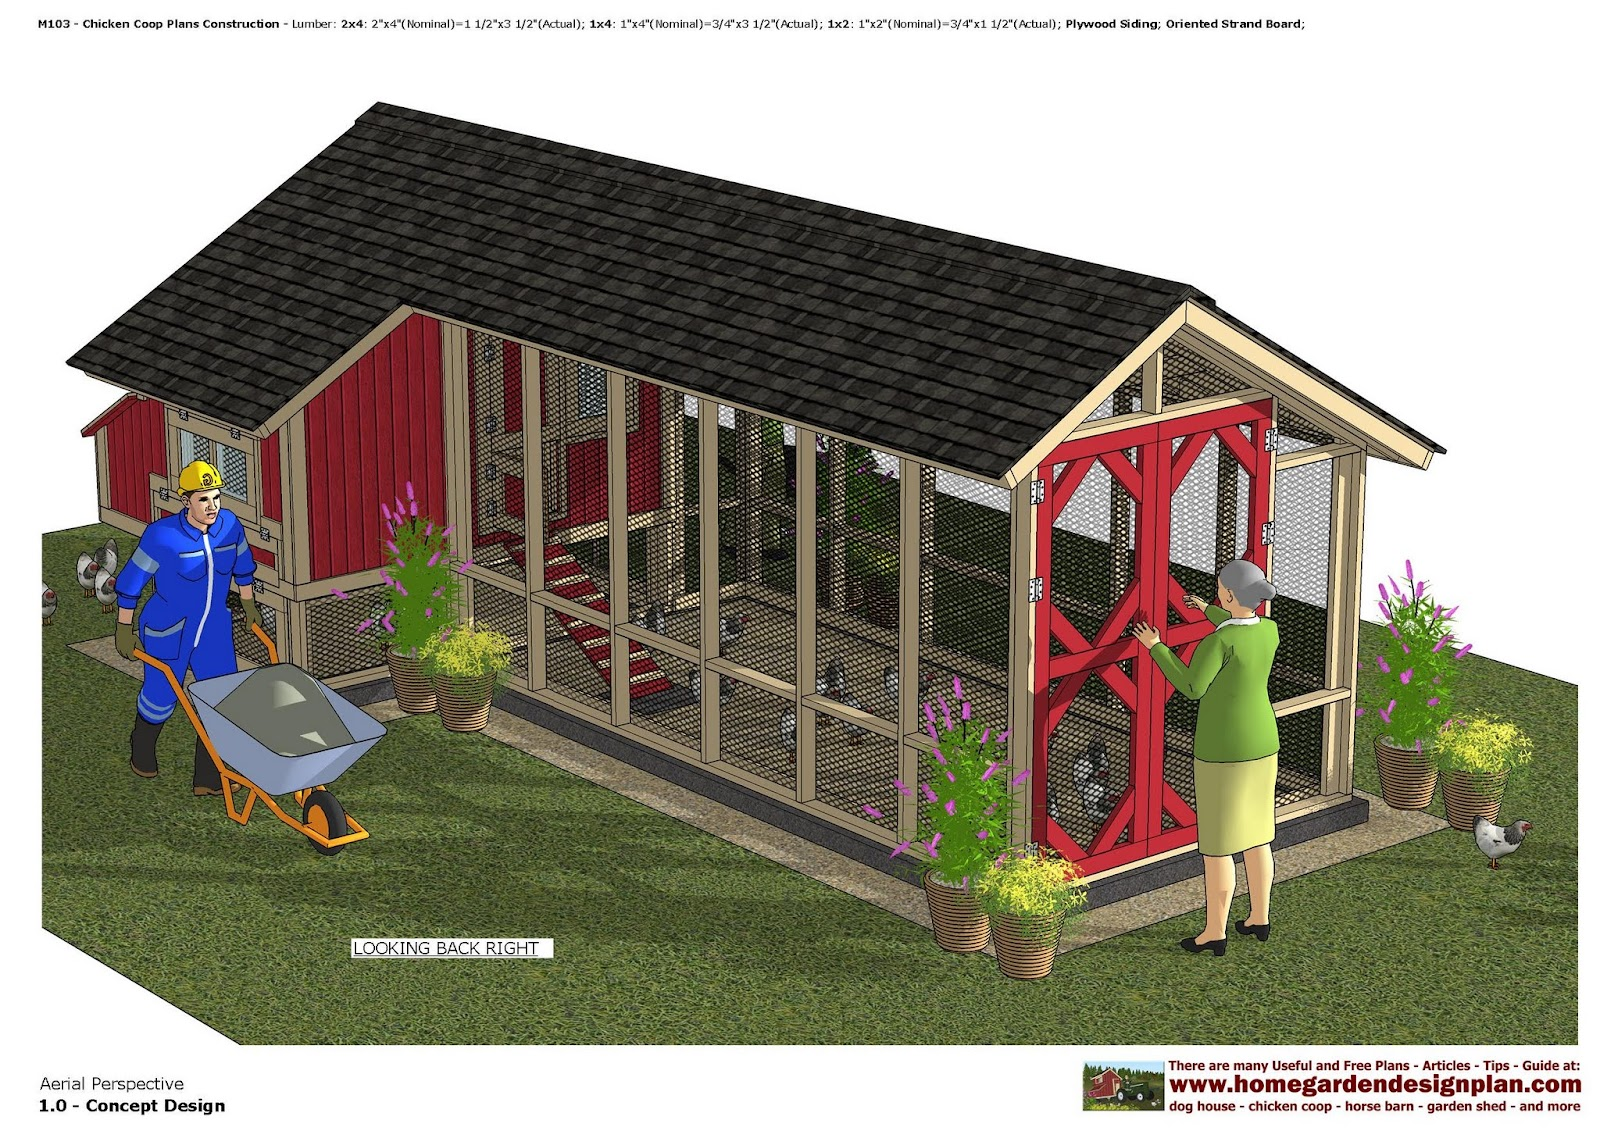 home garden plans m103 chicken coop plans chicken coop design